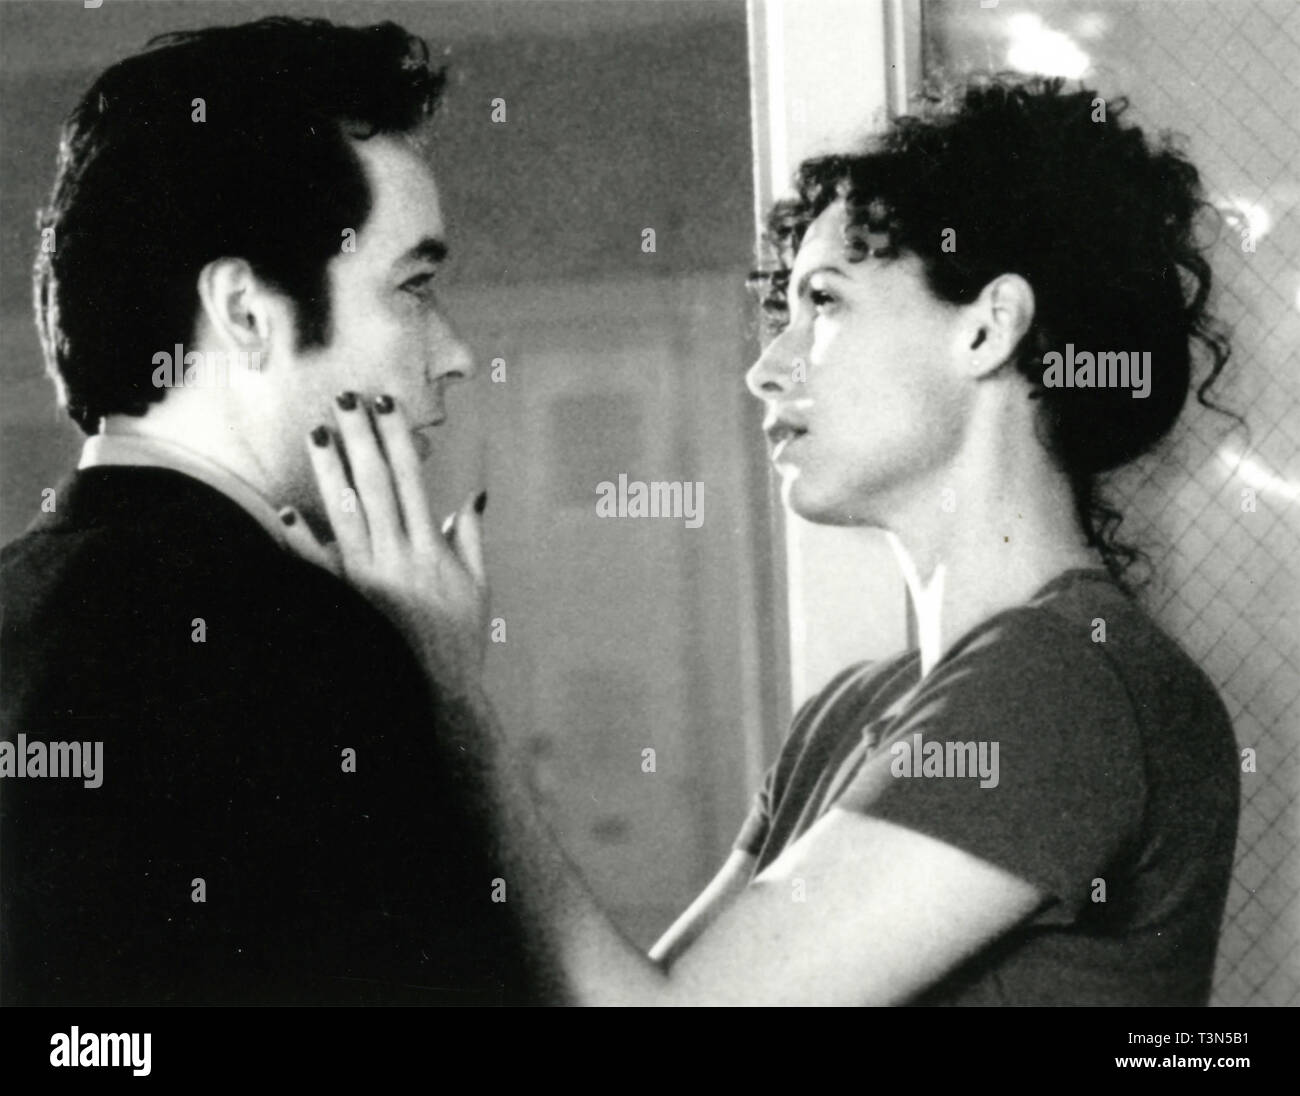 Actors Minnie Driver and John Cusack in the movie Grosse Pointe Blank, 1990s - Stock Image